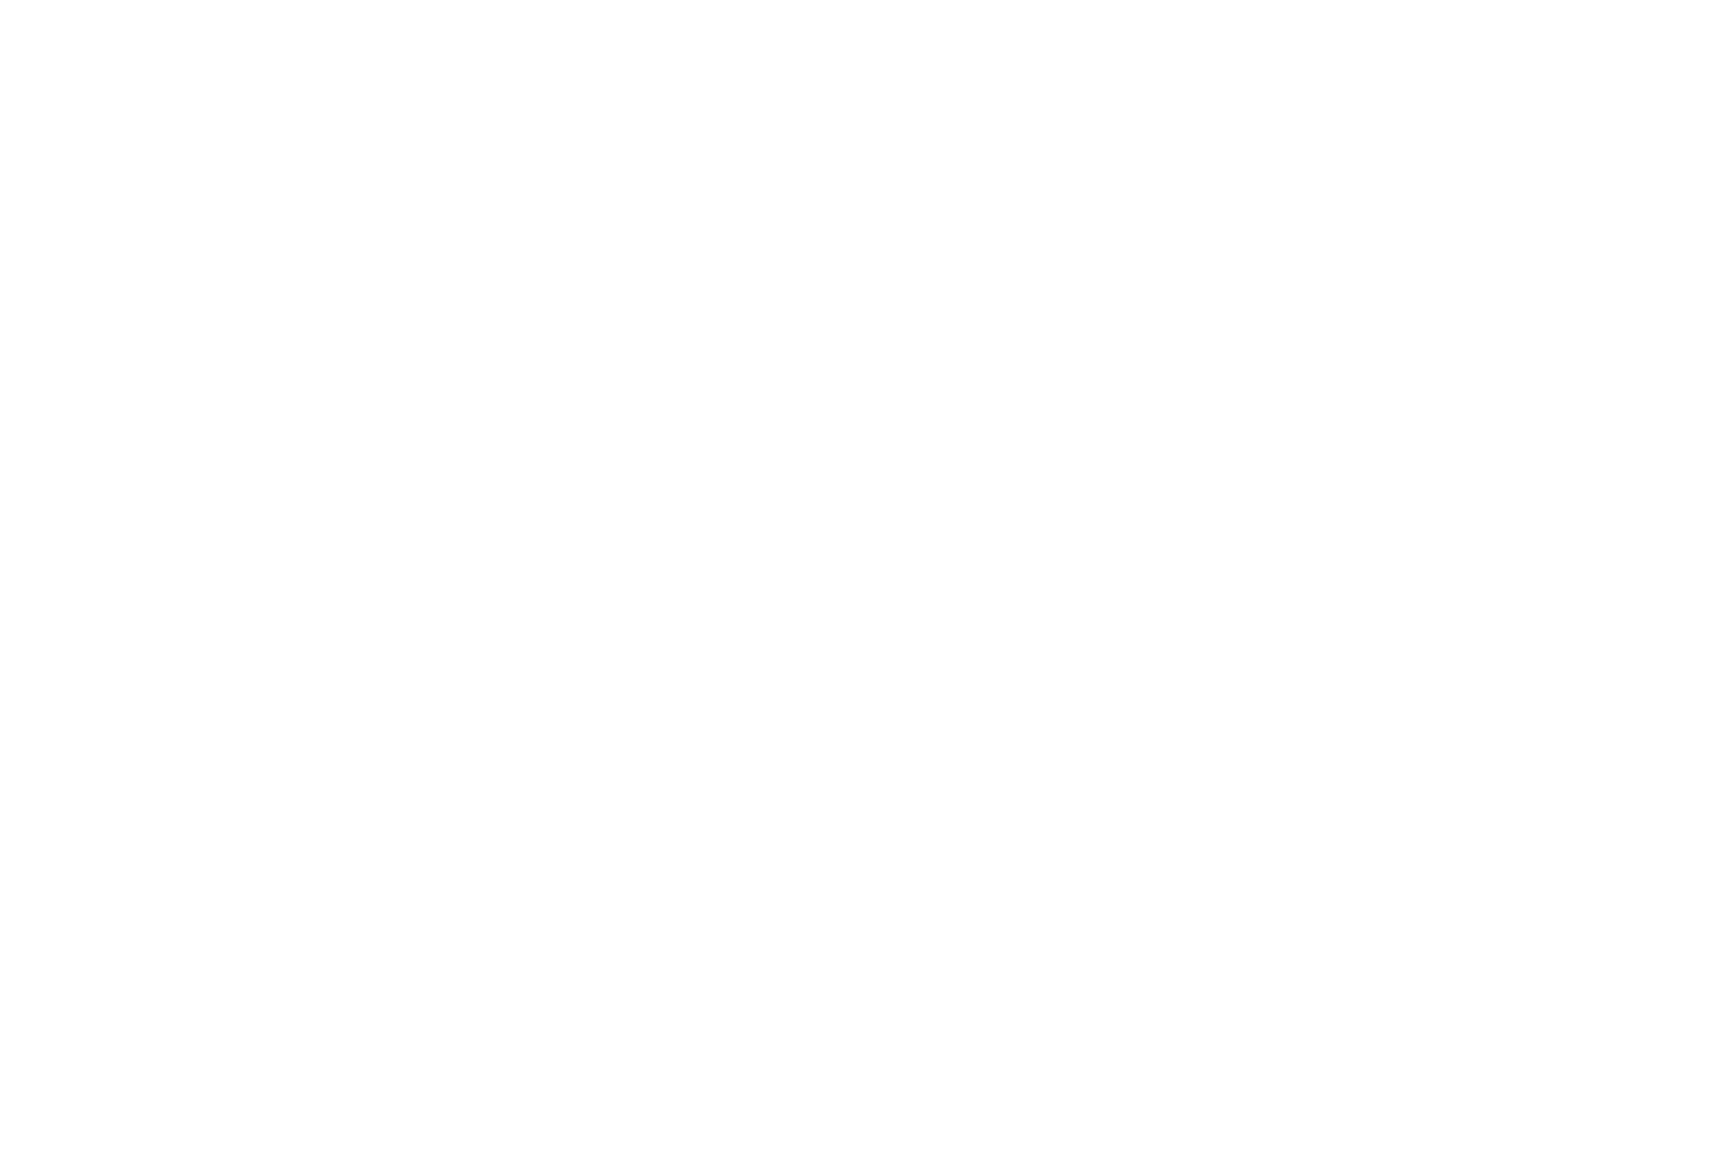 OFFICIAL SELECTION - Dubai Independent Film Festival - 2021